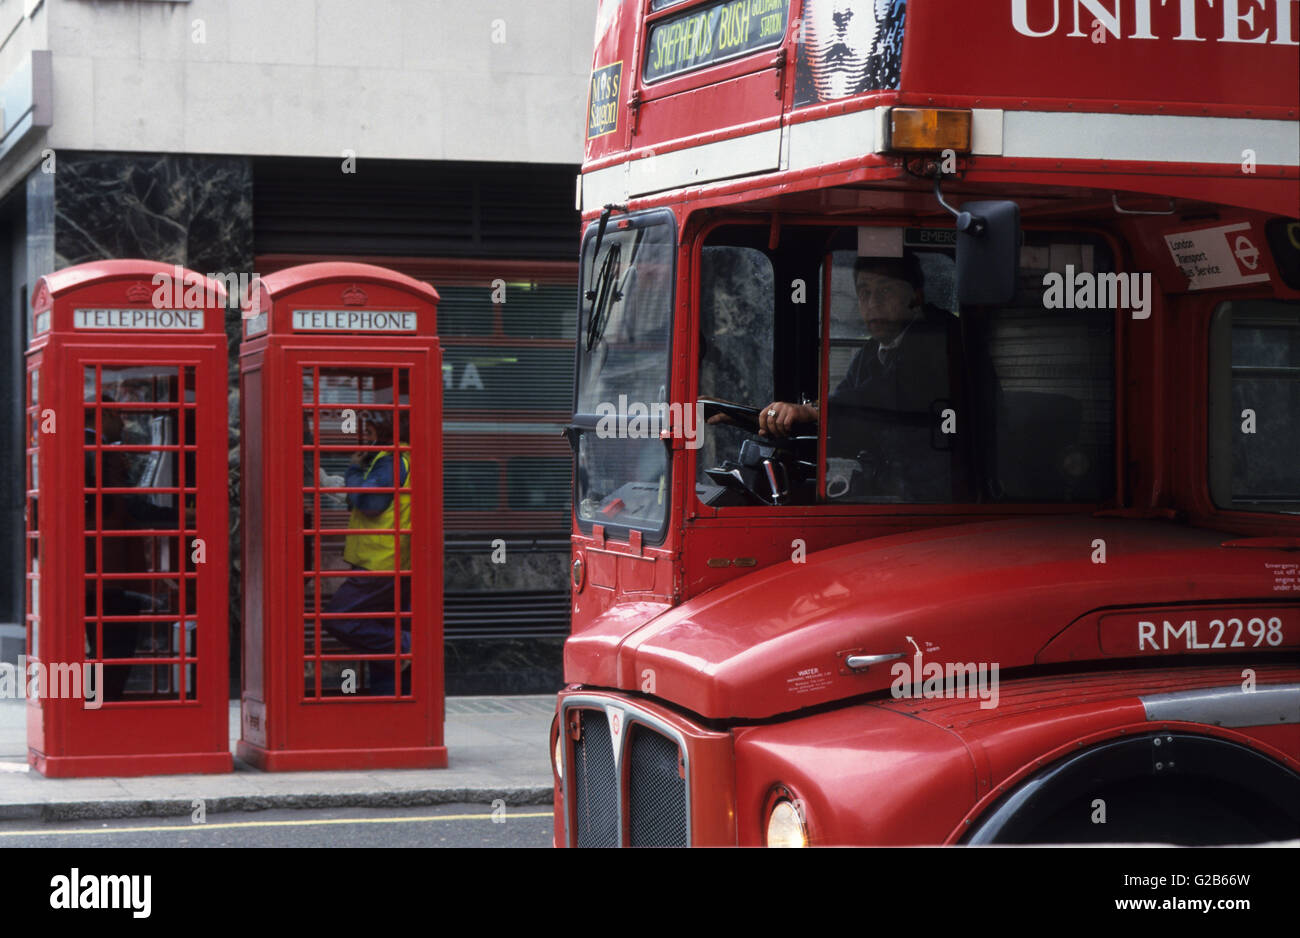 Great Britain London, red telephone cabin of british telecom and red double decker bus - Stock Image